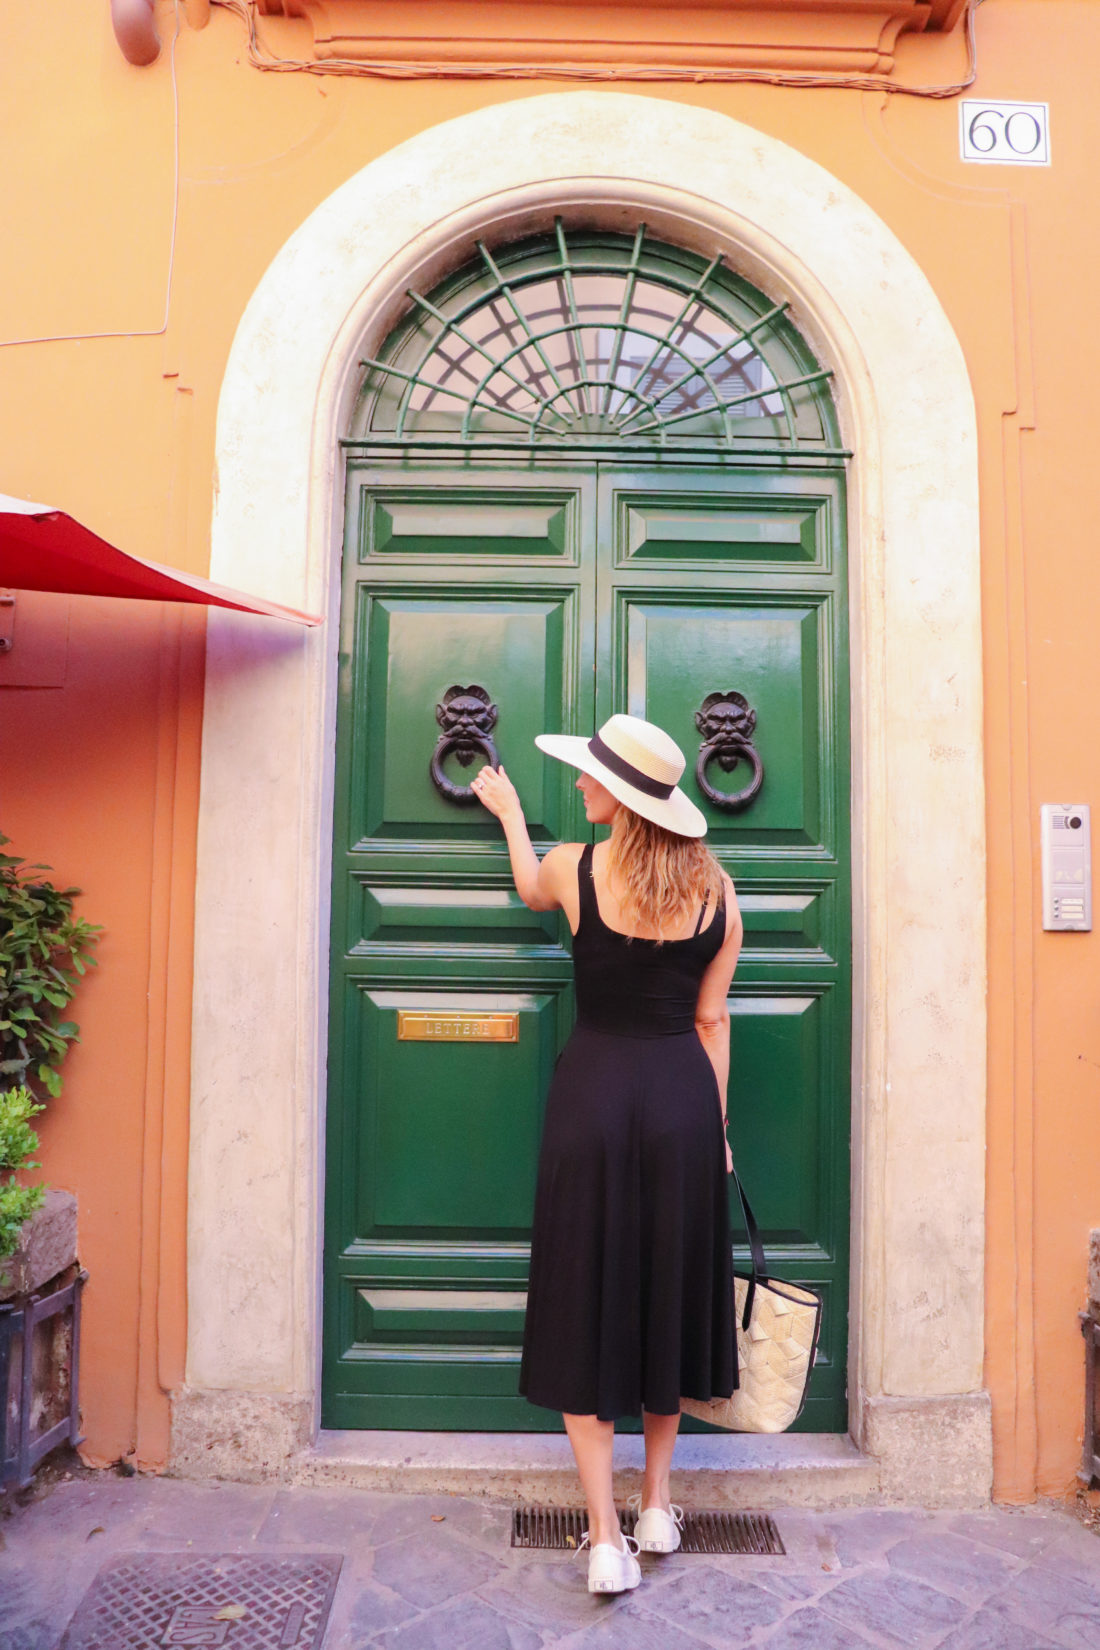 Eva Amurri Martino in front of a dramatic green door in Italy